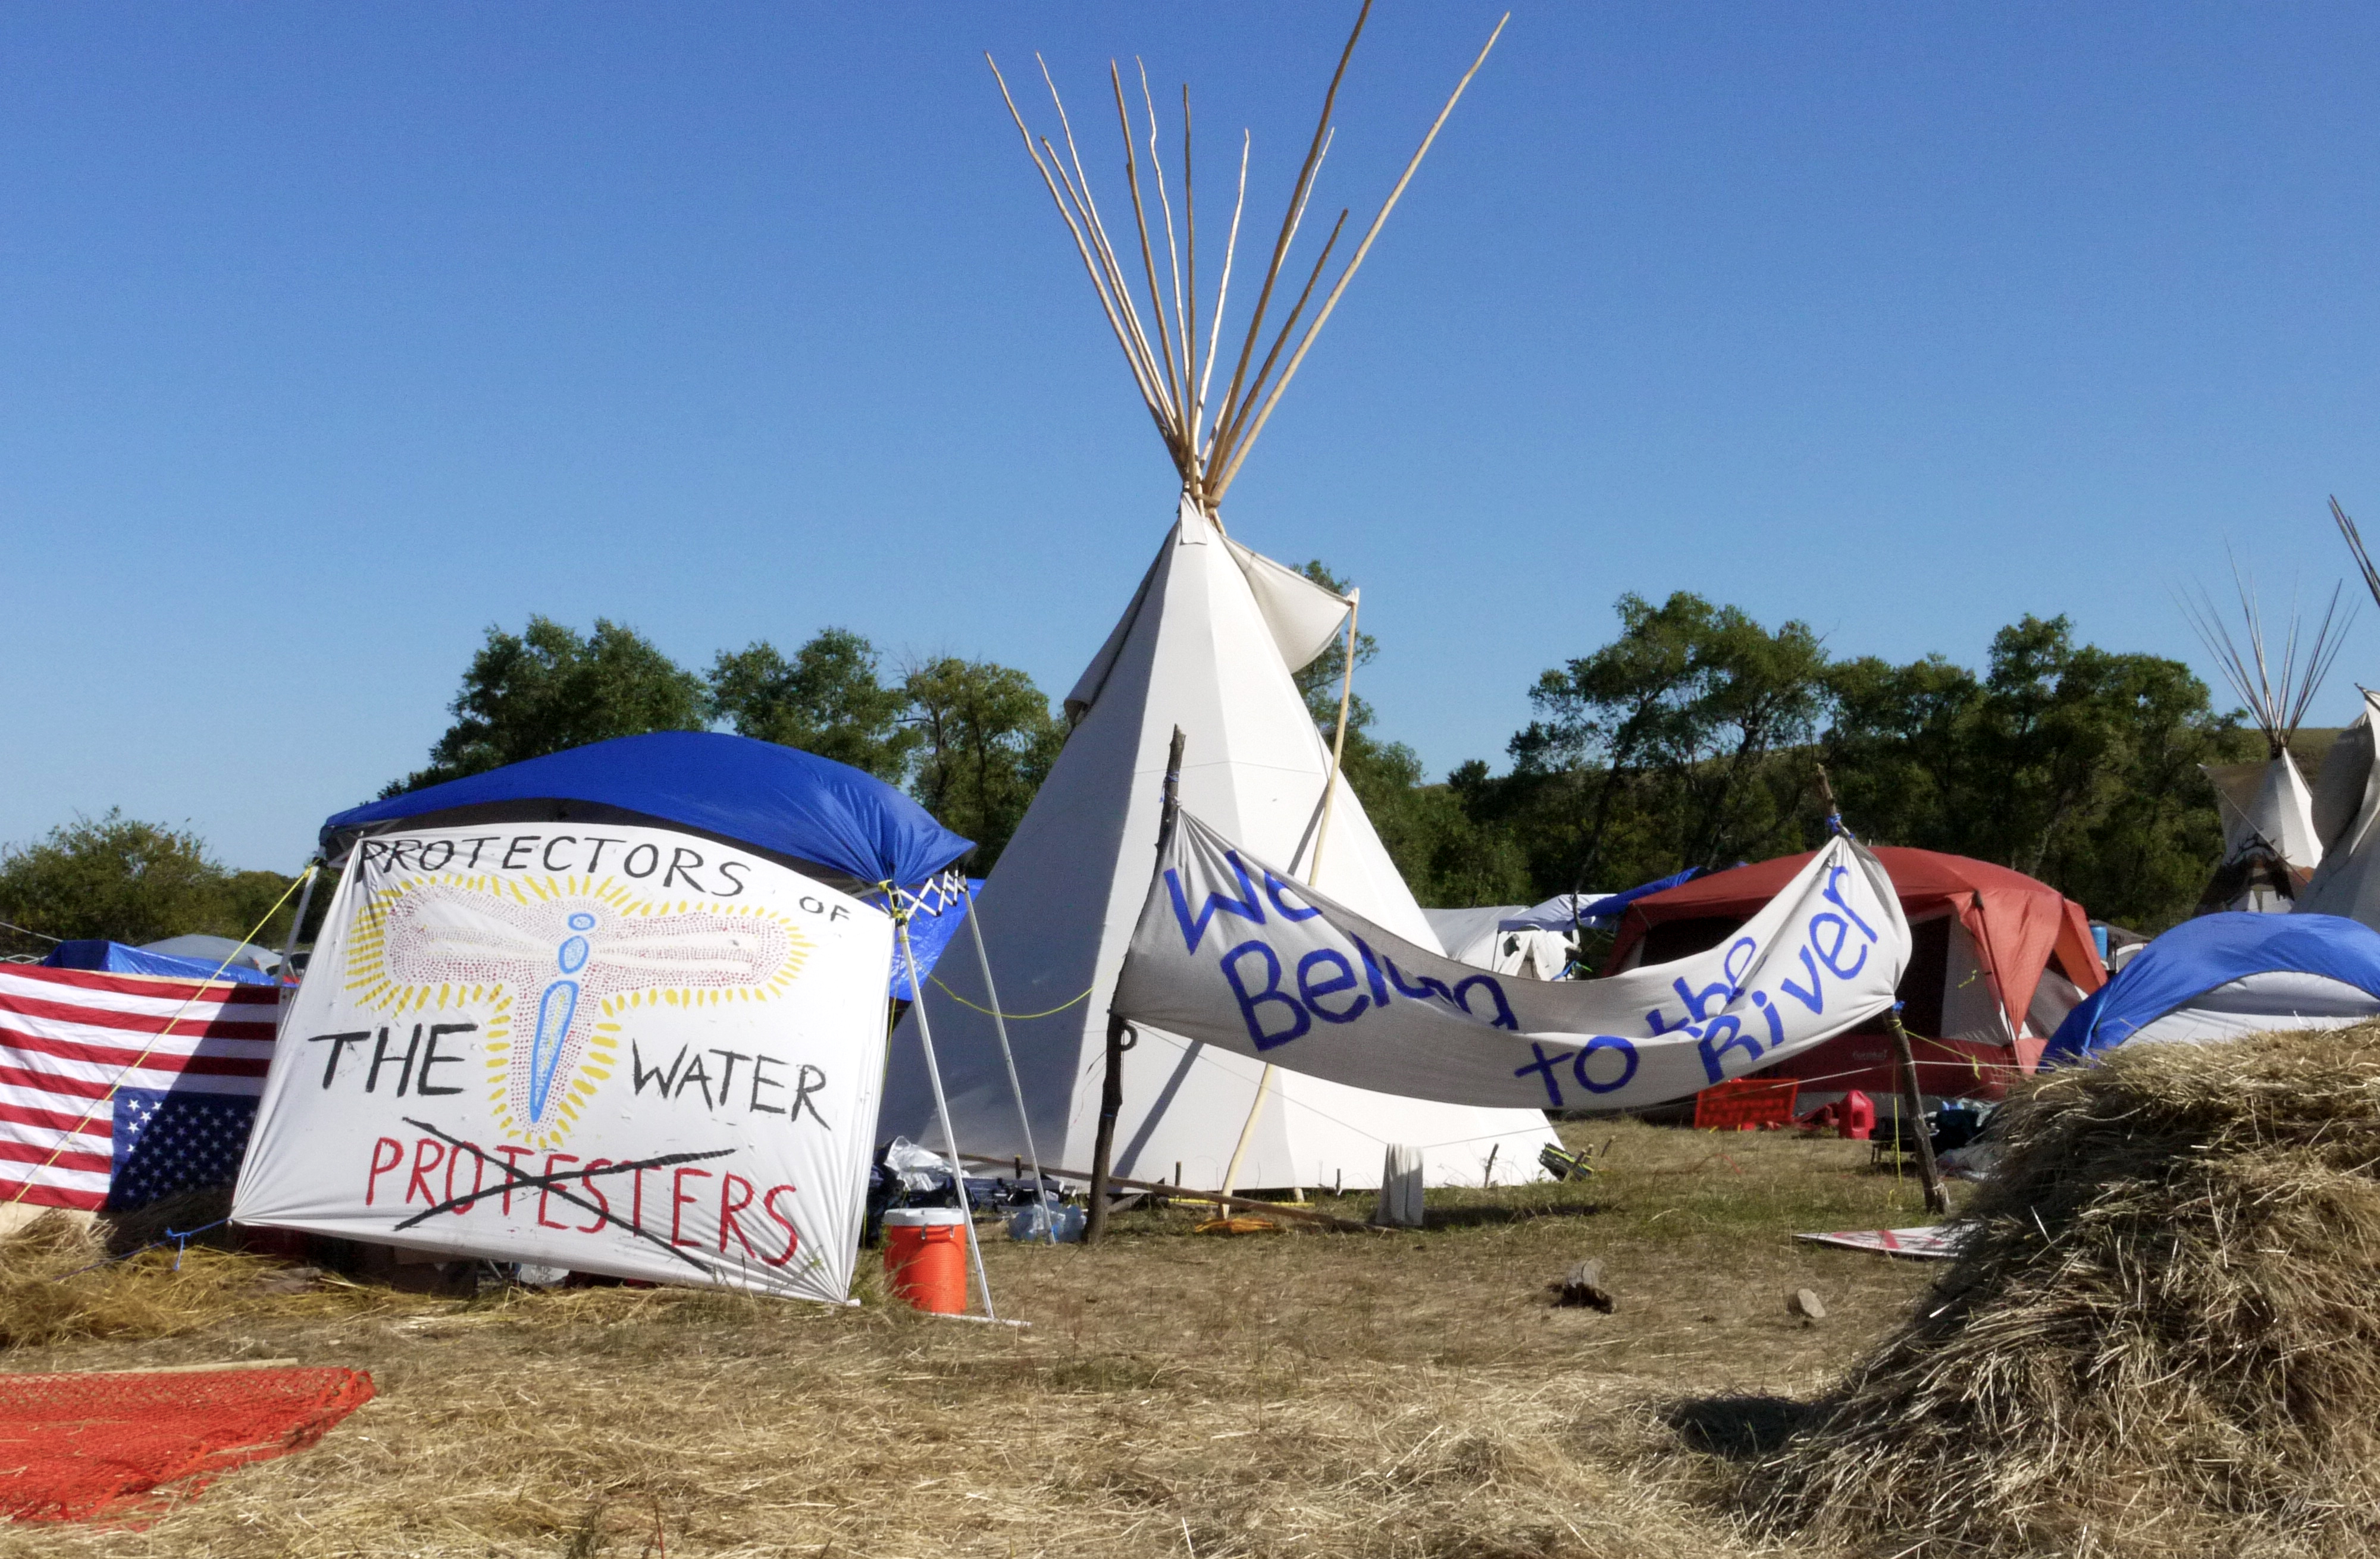 """A sign reading """"Protectors of the Water, not Protesters,"""" outside of the Red Warrior Camp, Sept. 14, 2016. (Sarah Jaffe for BillMoyers.com)"""